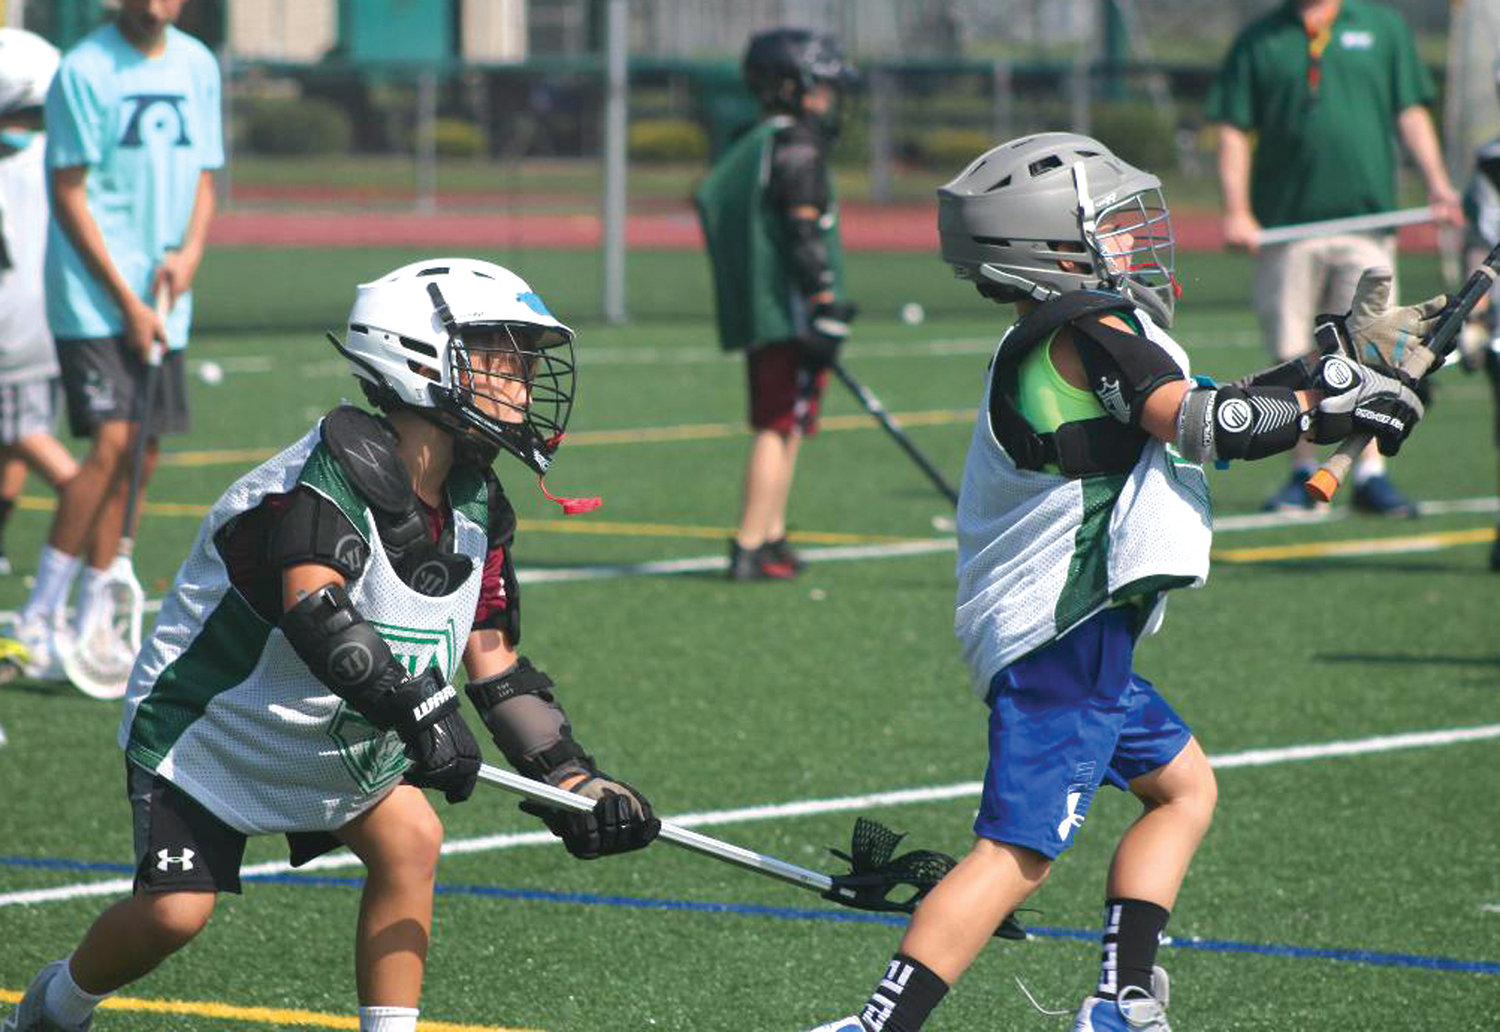 HAPPY CAMPERS: Local lacrosse players run through drills at Hendricken's Hawks Academy camp at the school earlier this week.